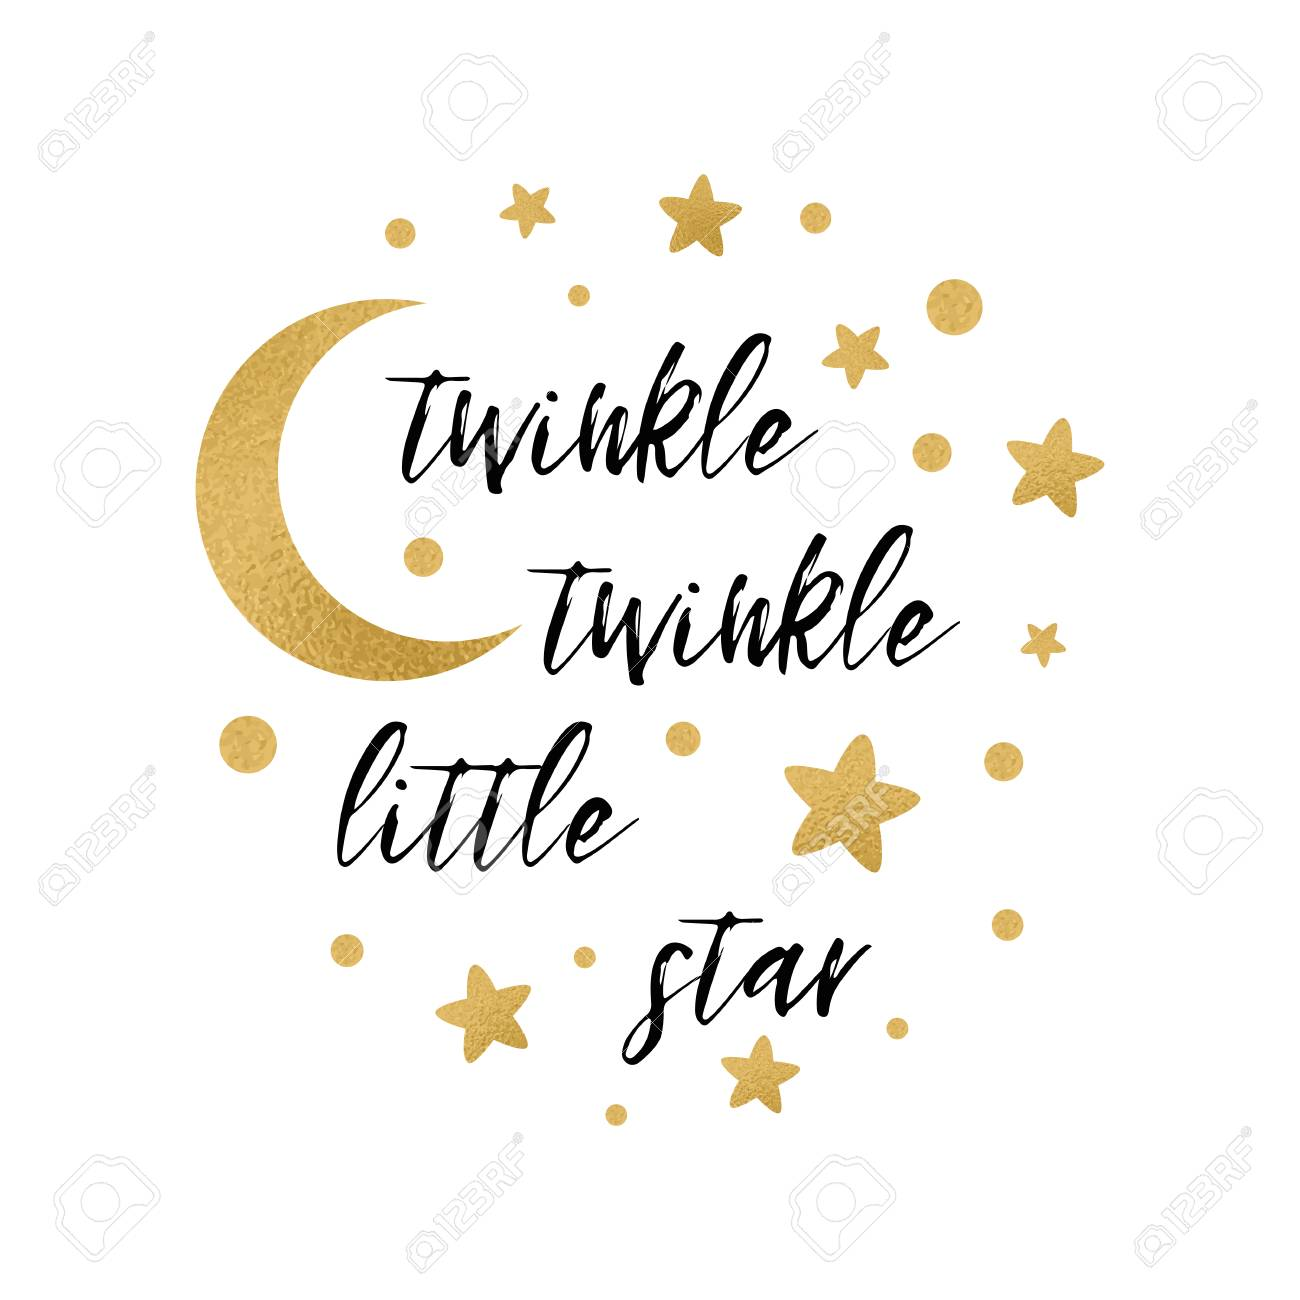 picture relating to Baby Shower Card Printable identify Twinkle twinkle minor star terms with adorable gold star and moon..